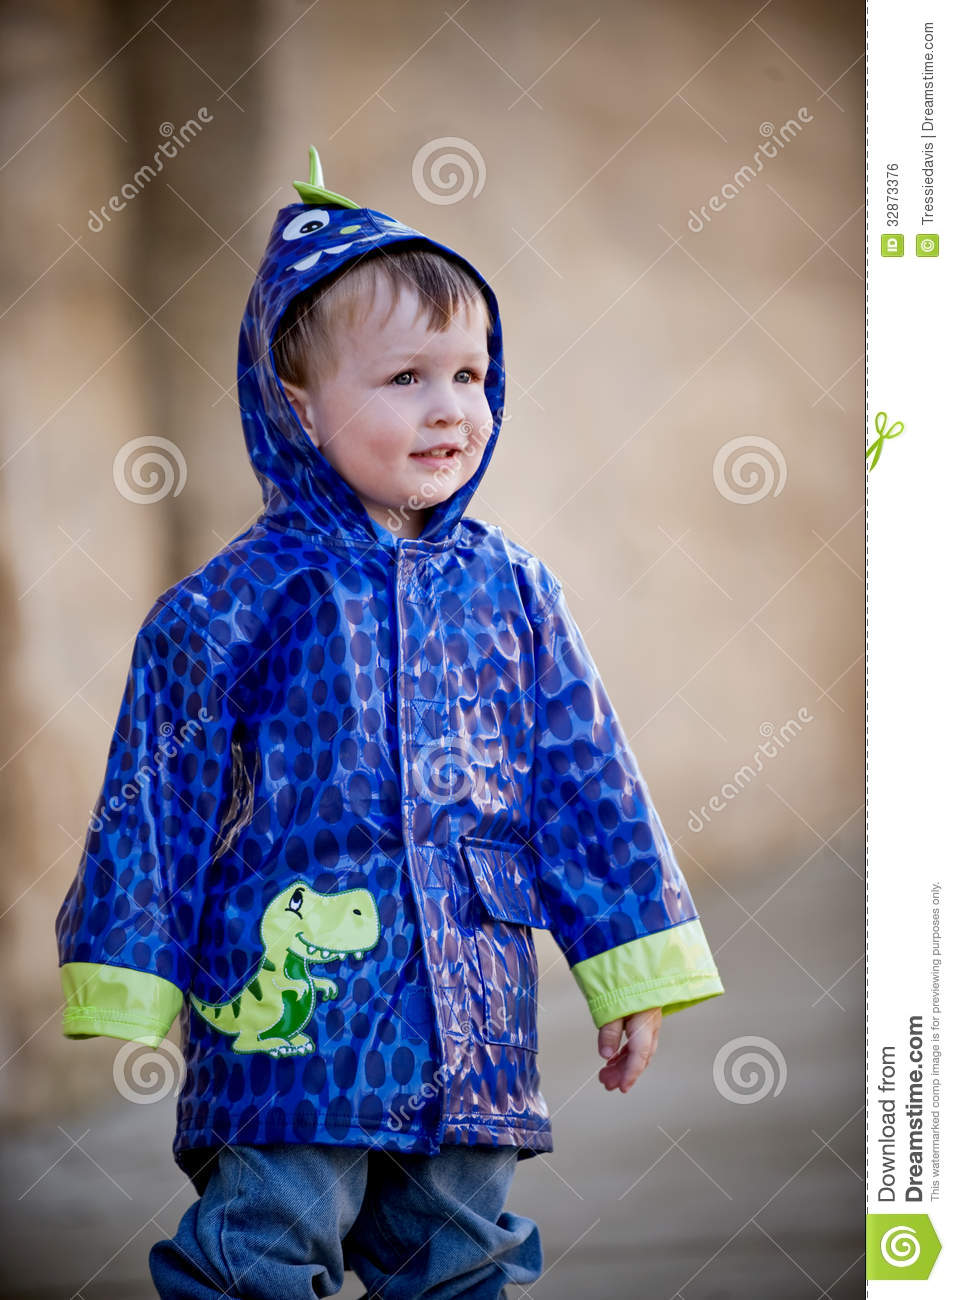 Stay Dry & Comfortable With Boys' Rain Jackets & Coats. Beat the wind and the rain with boys' raincoats from DICK'S Sporting Goods. Don't let your little guy get soggy and grumpy.